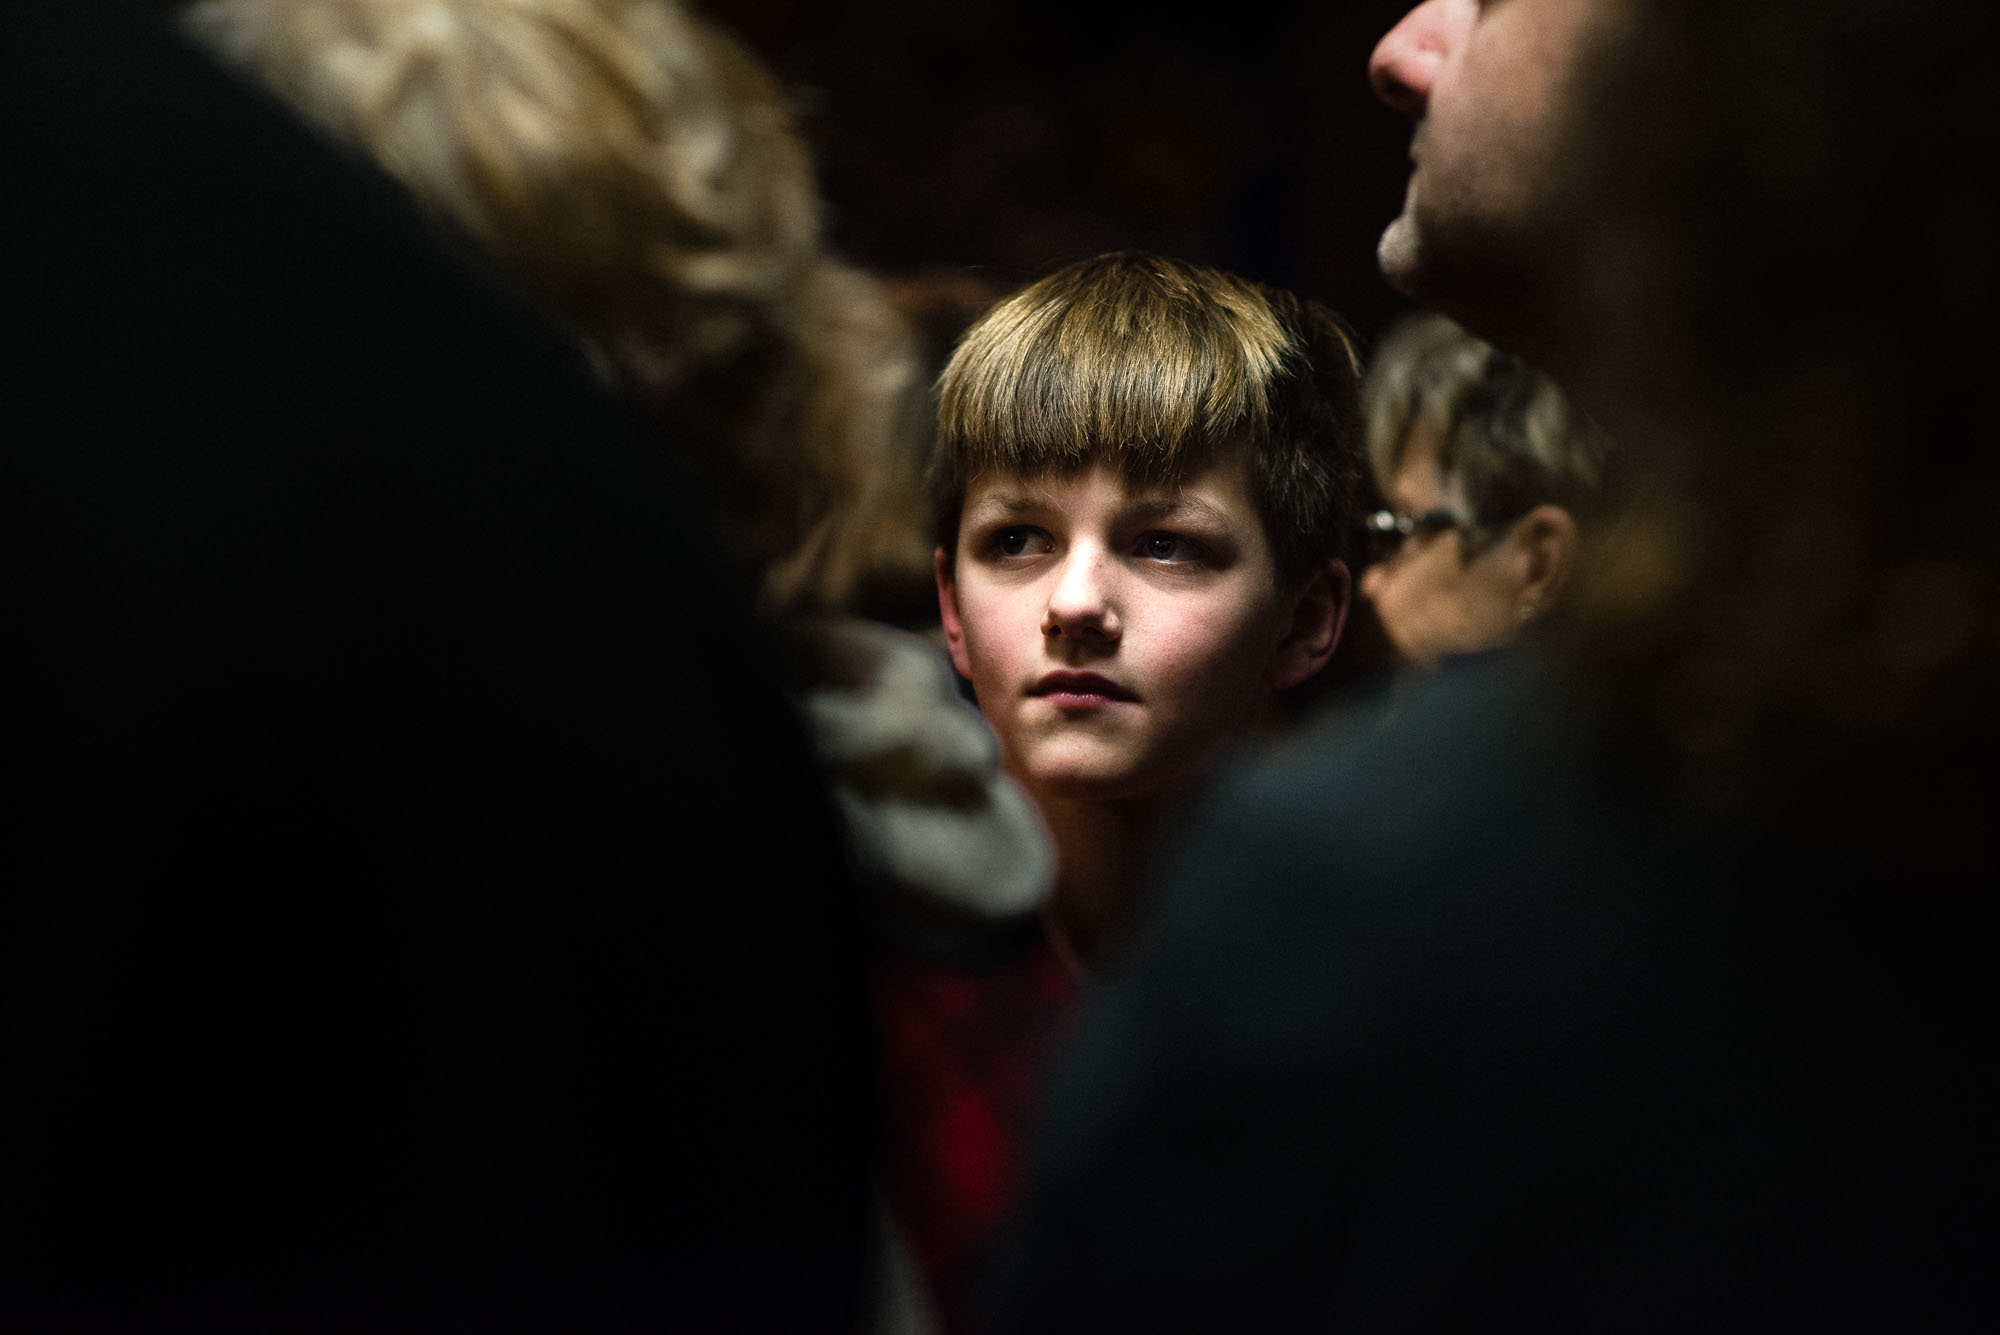 portrait of a boy in the crowd